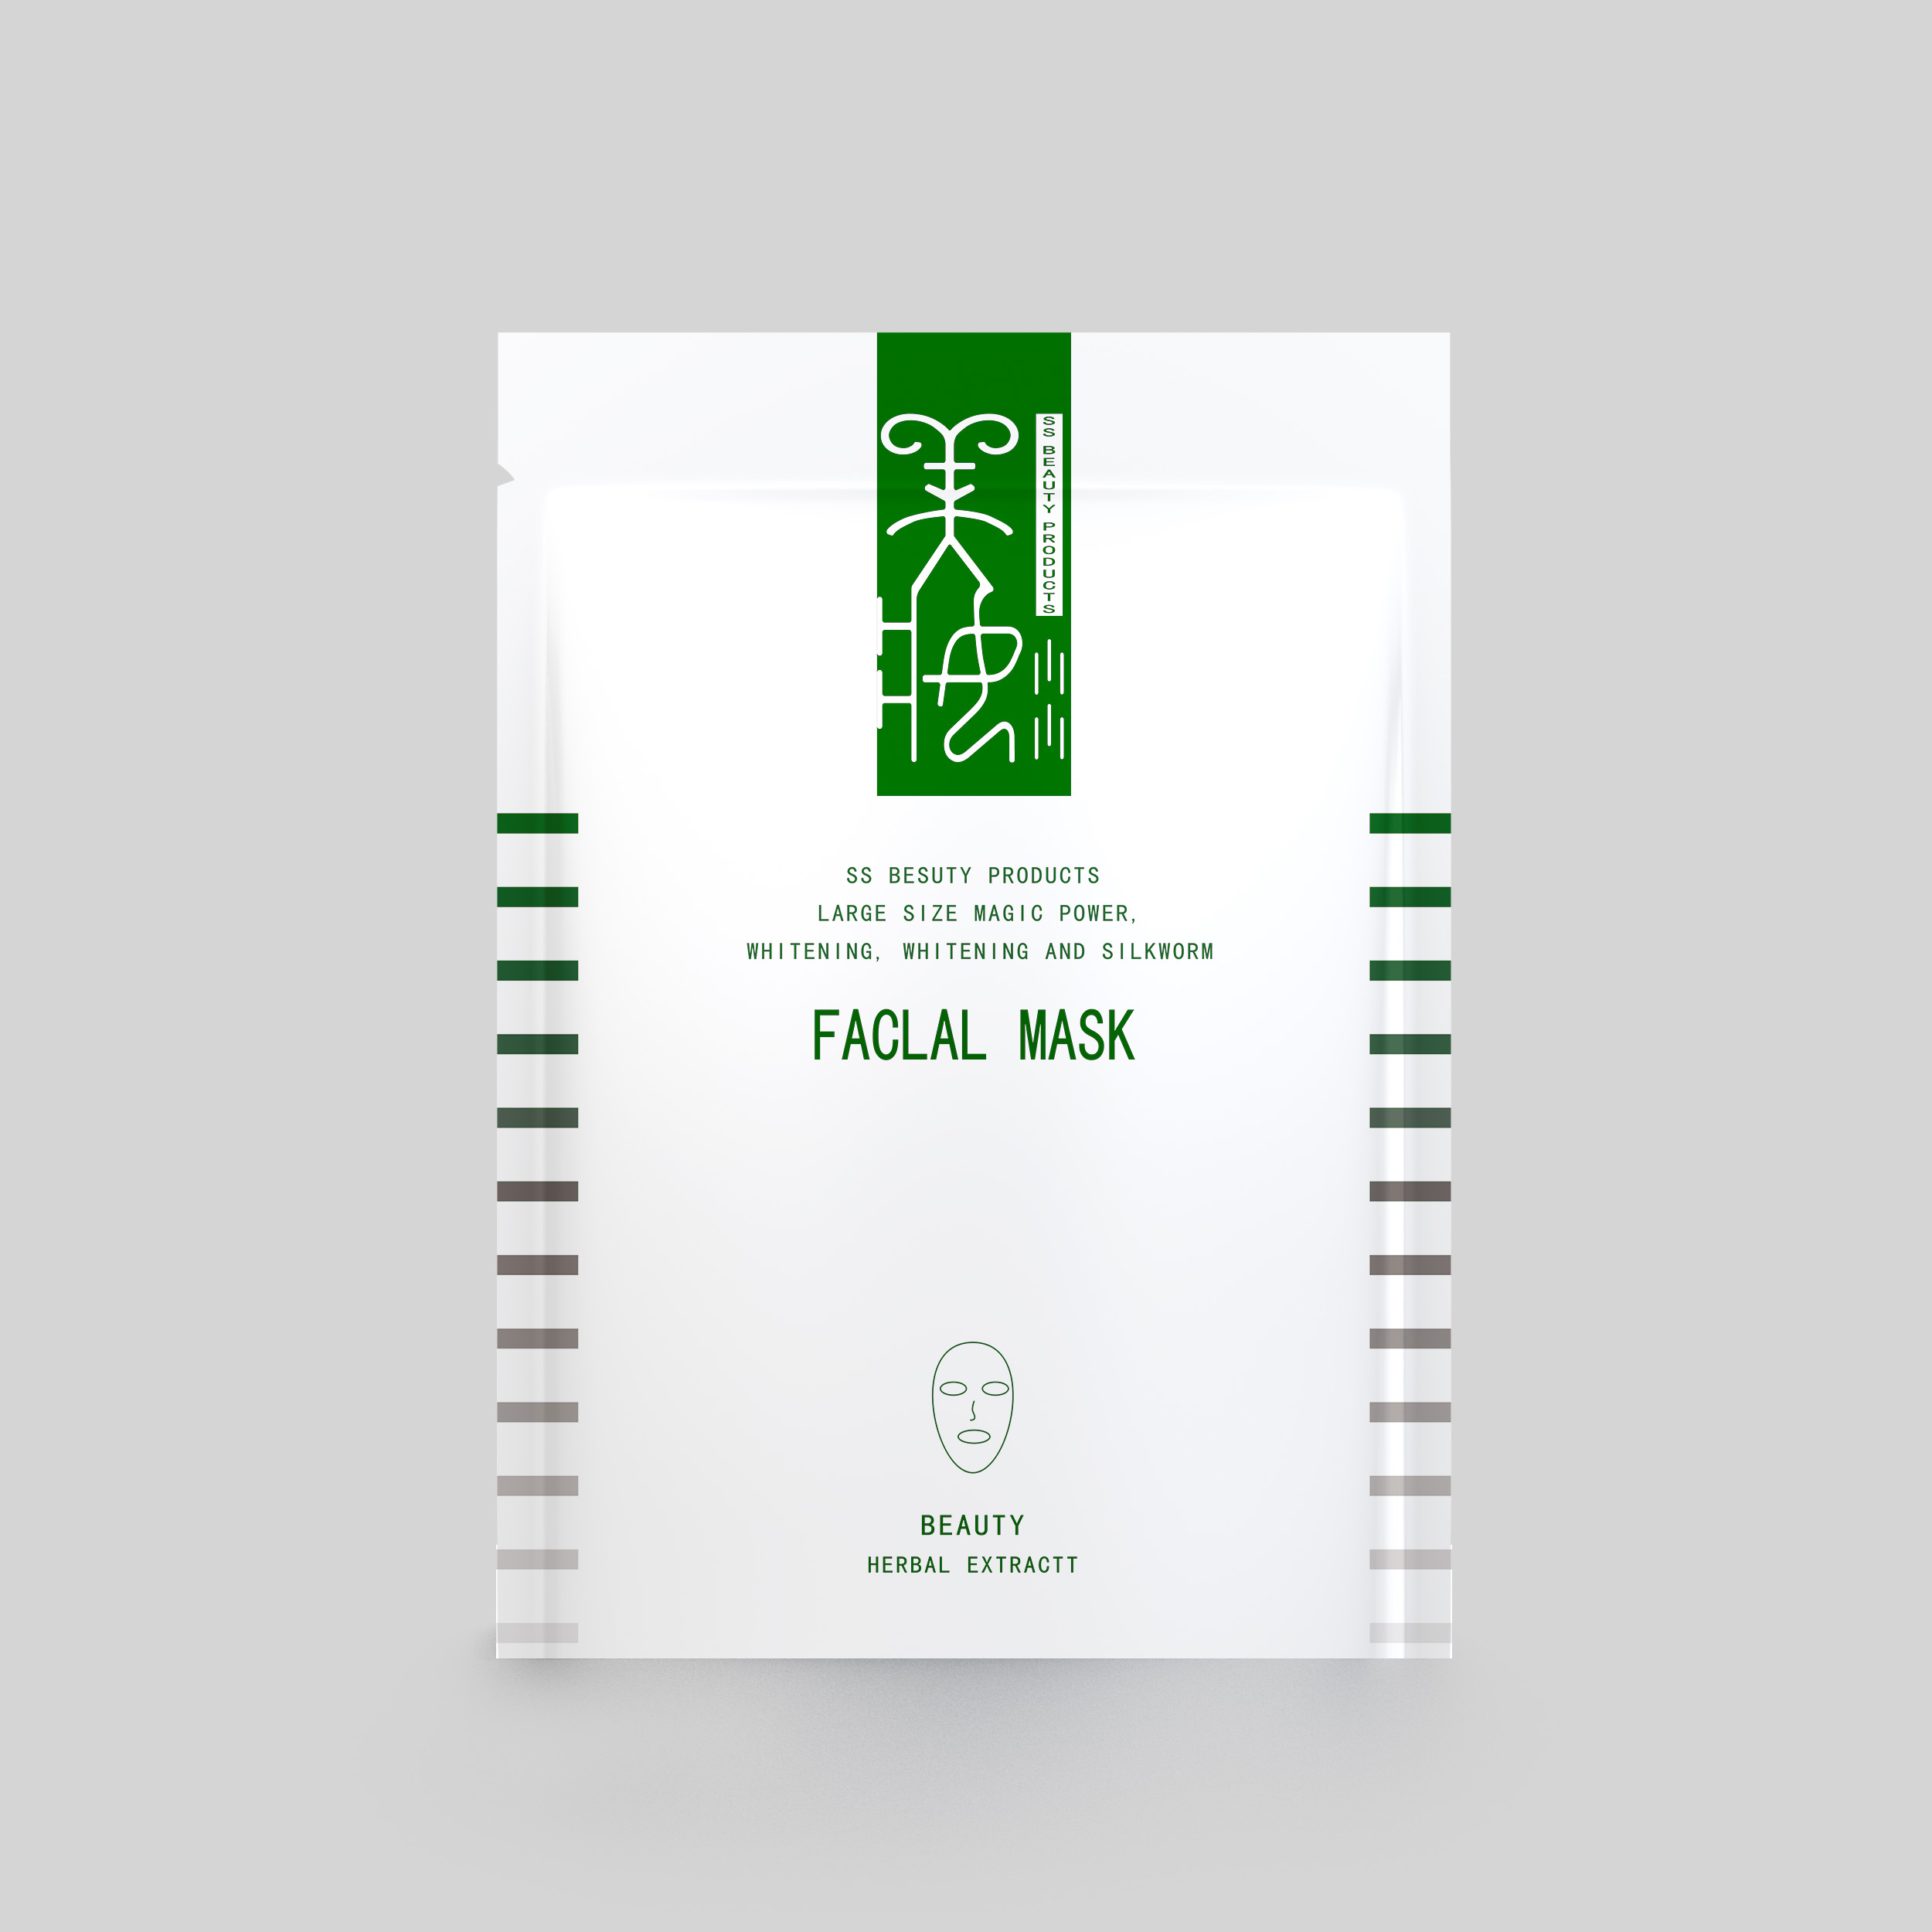 Yucai-Face Mask Packaging Facial Mask Packaging Bag With Plastic Cosmetic Packaging-1